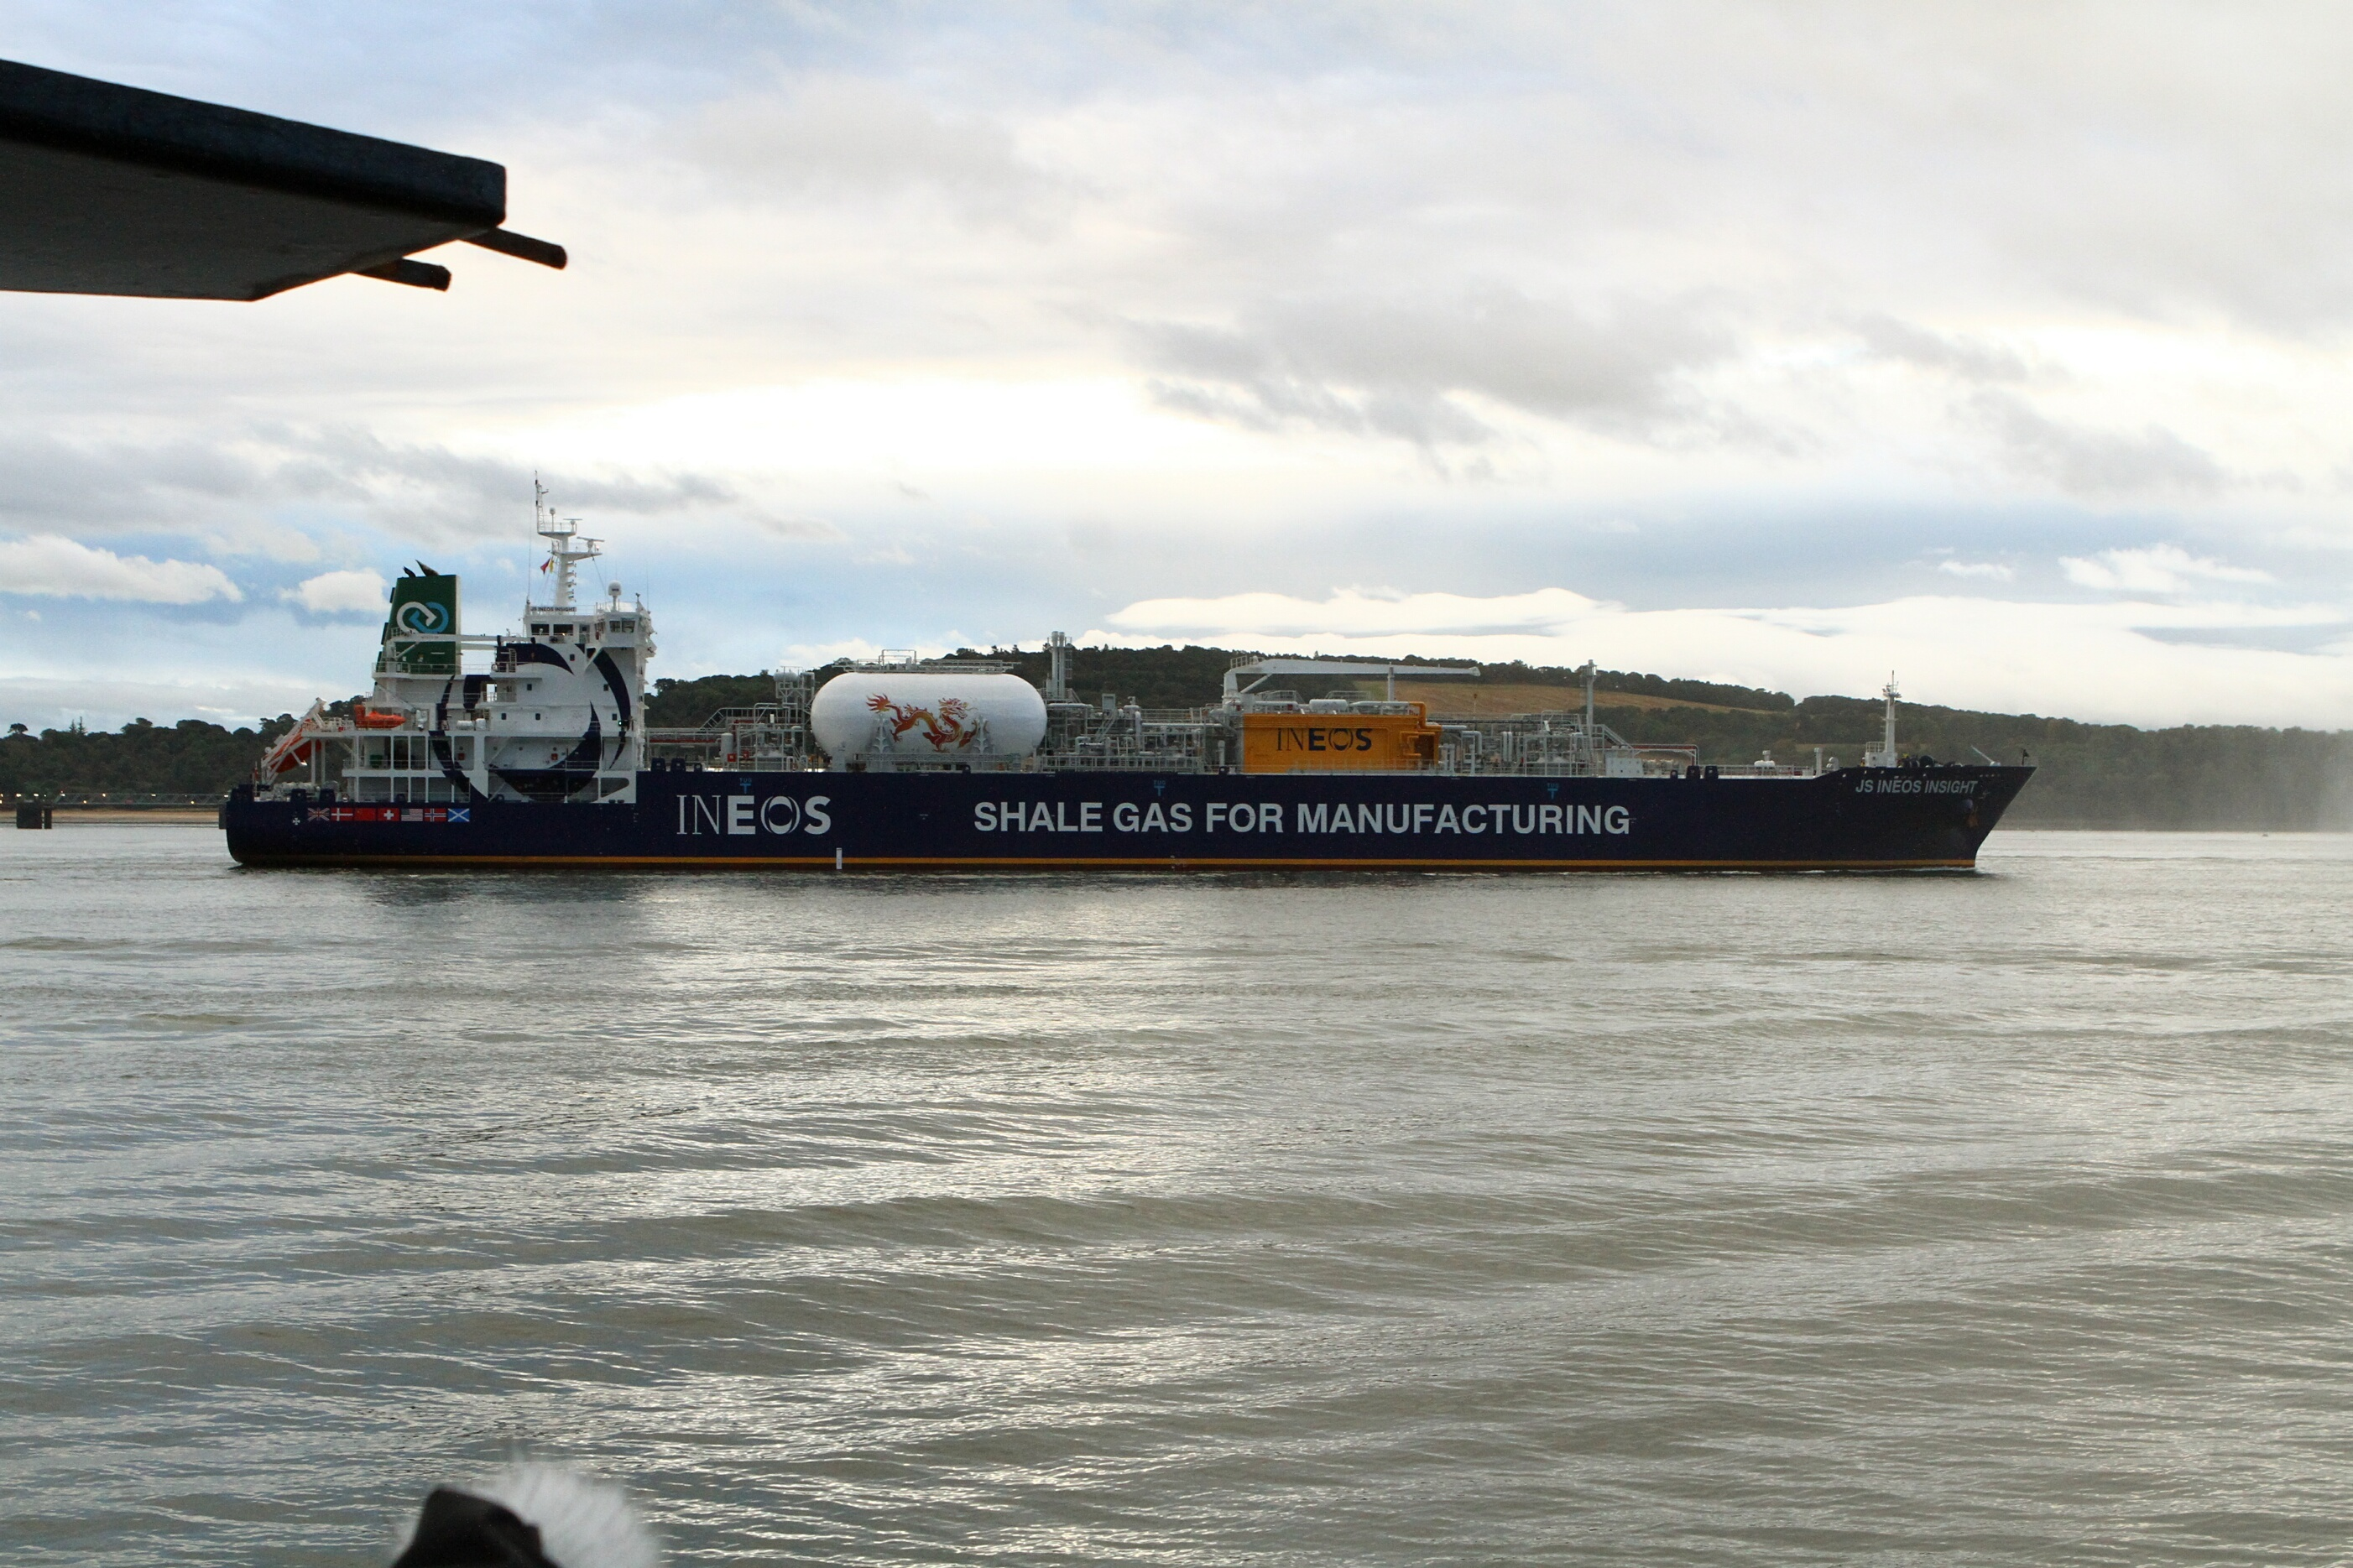 The INEOS Insight in the Forth